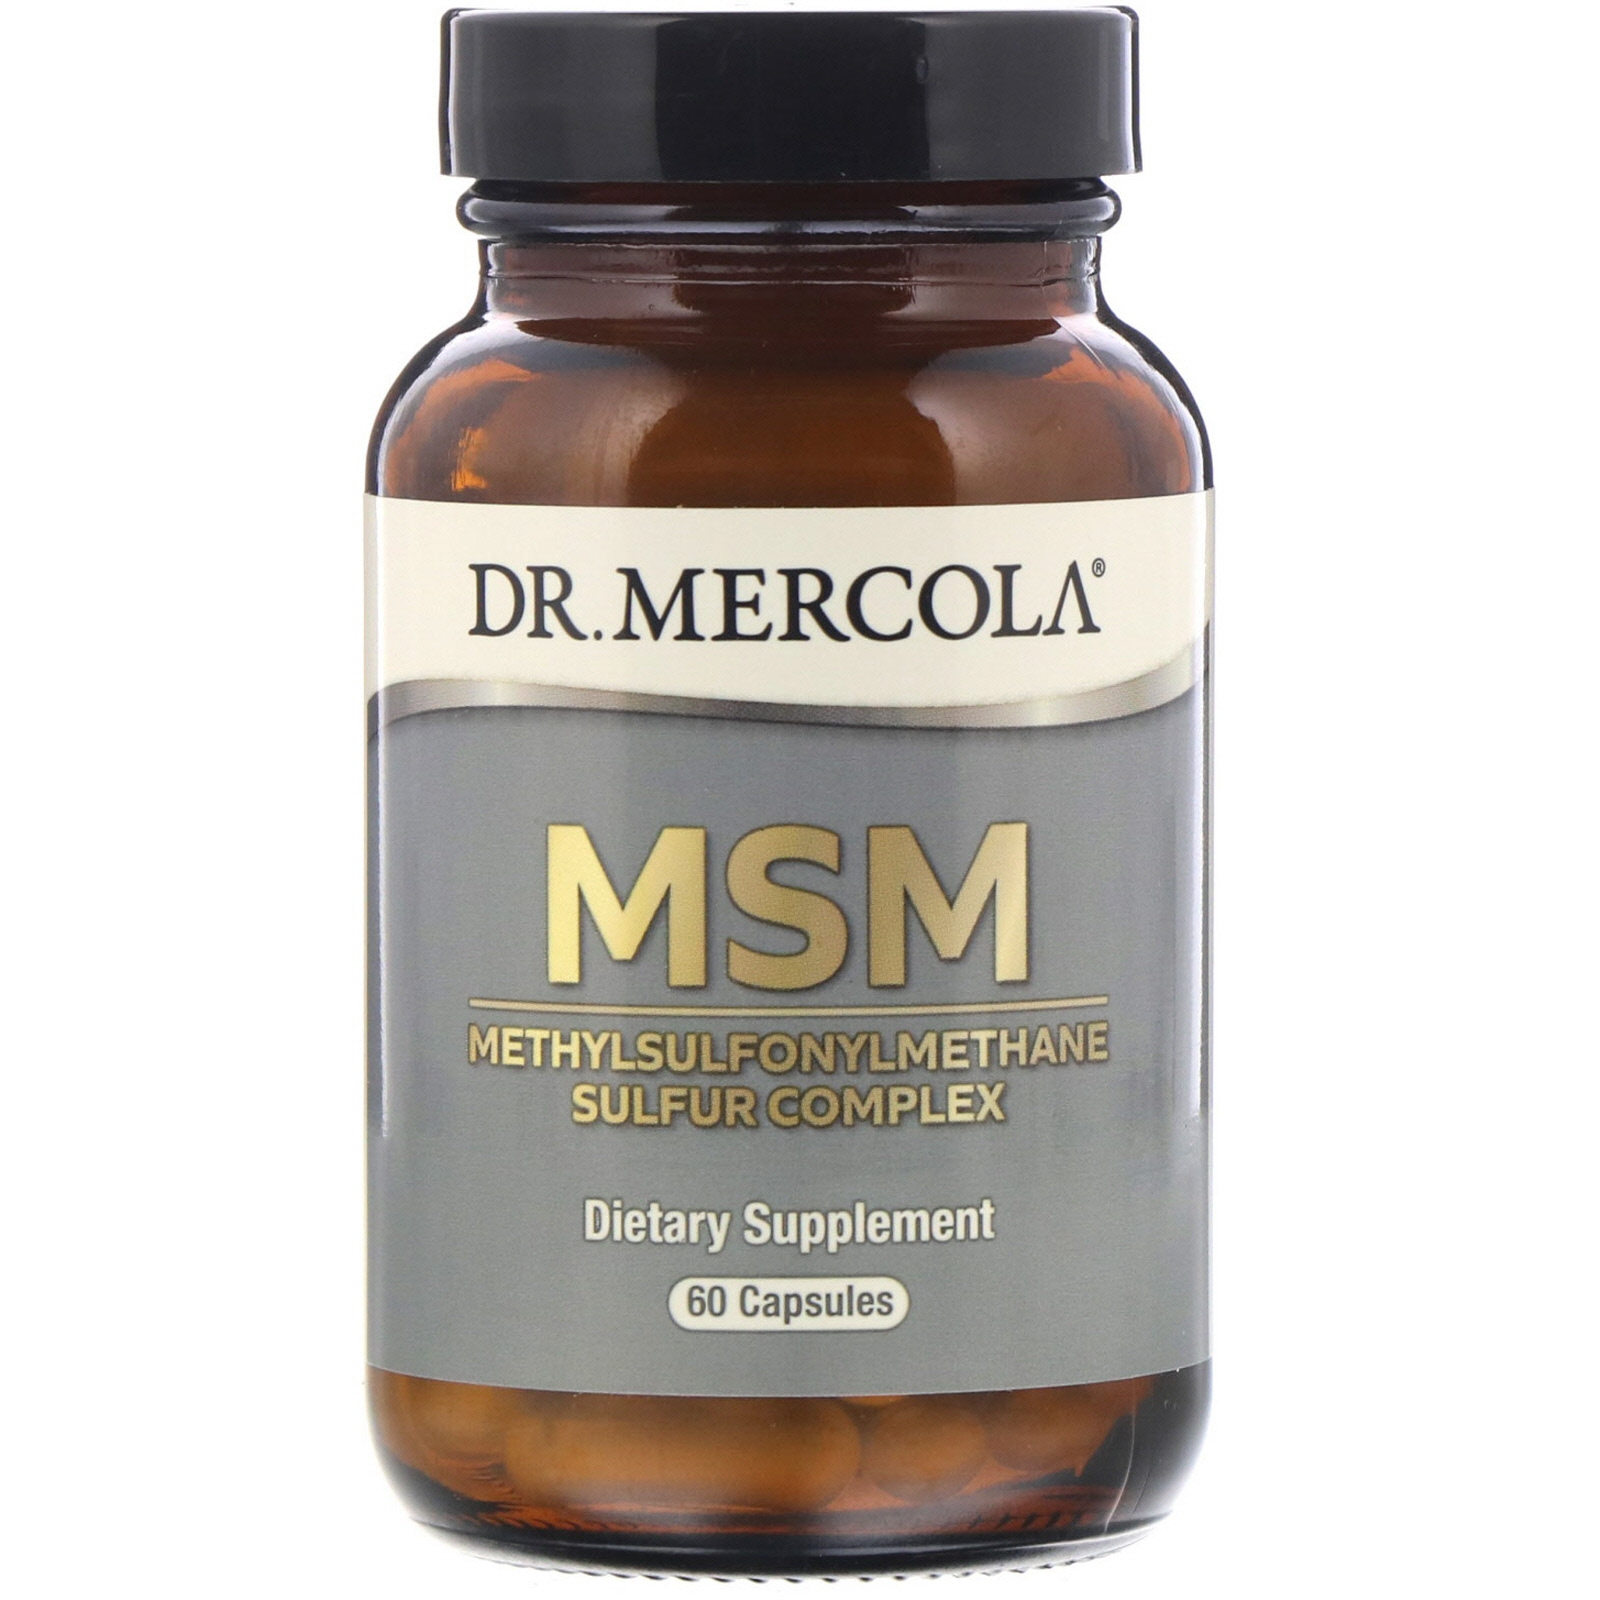 Image of MSM with Organic Sulfur Complex (60 Capsules) - Dr. Mercola 0813006015004